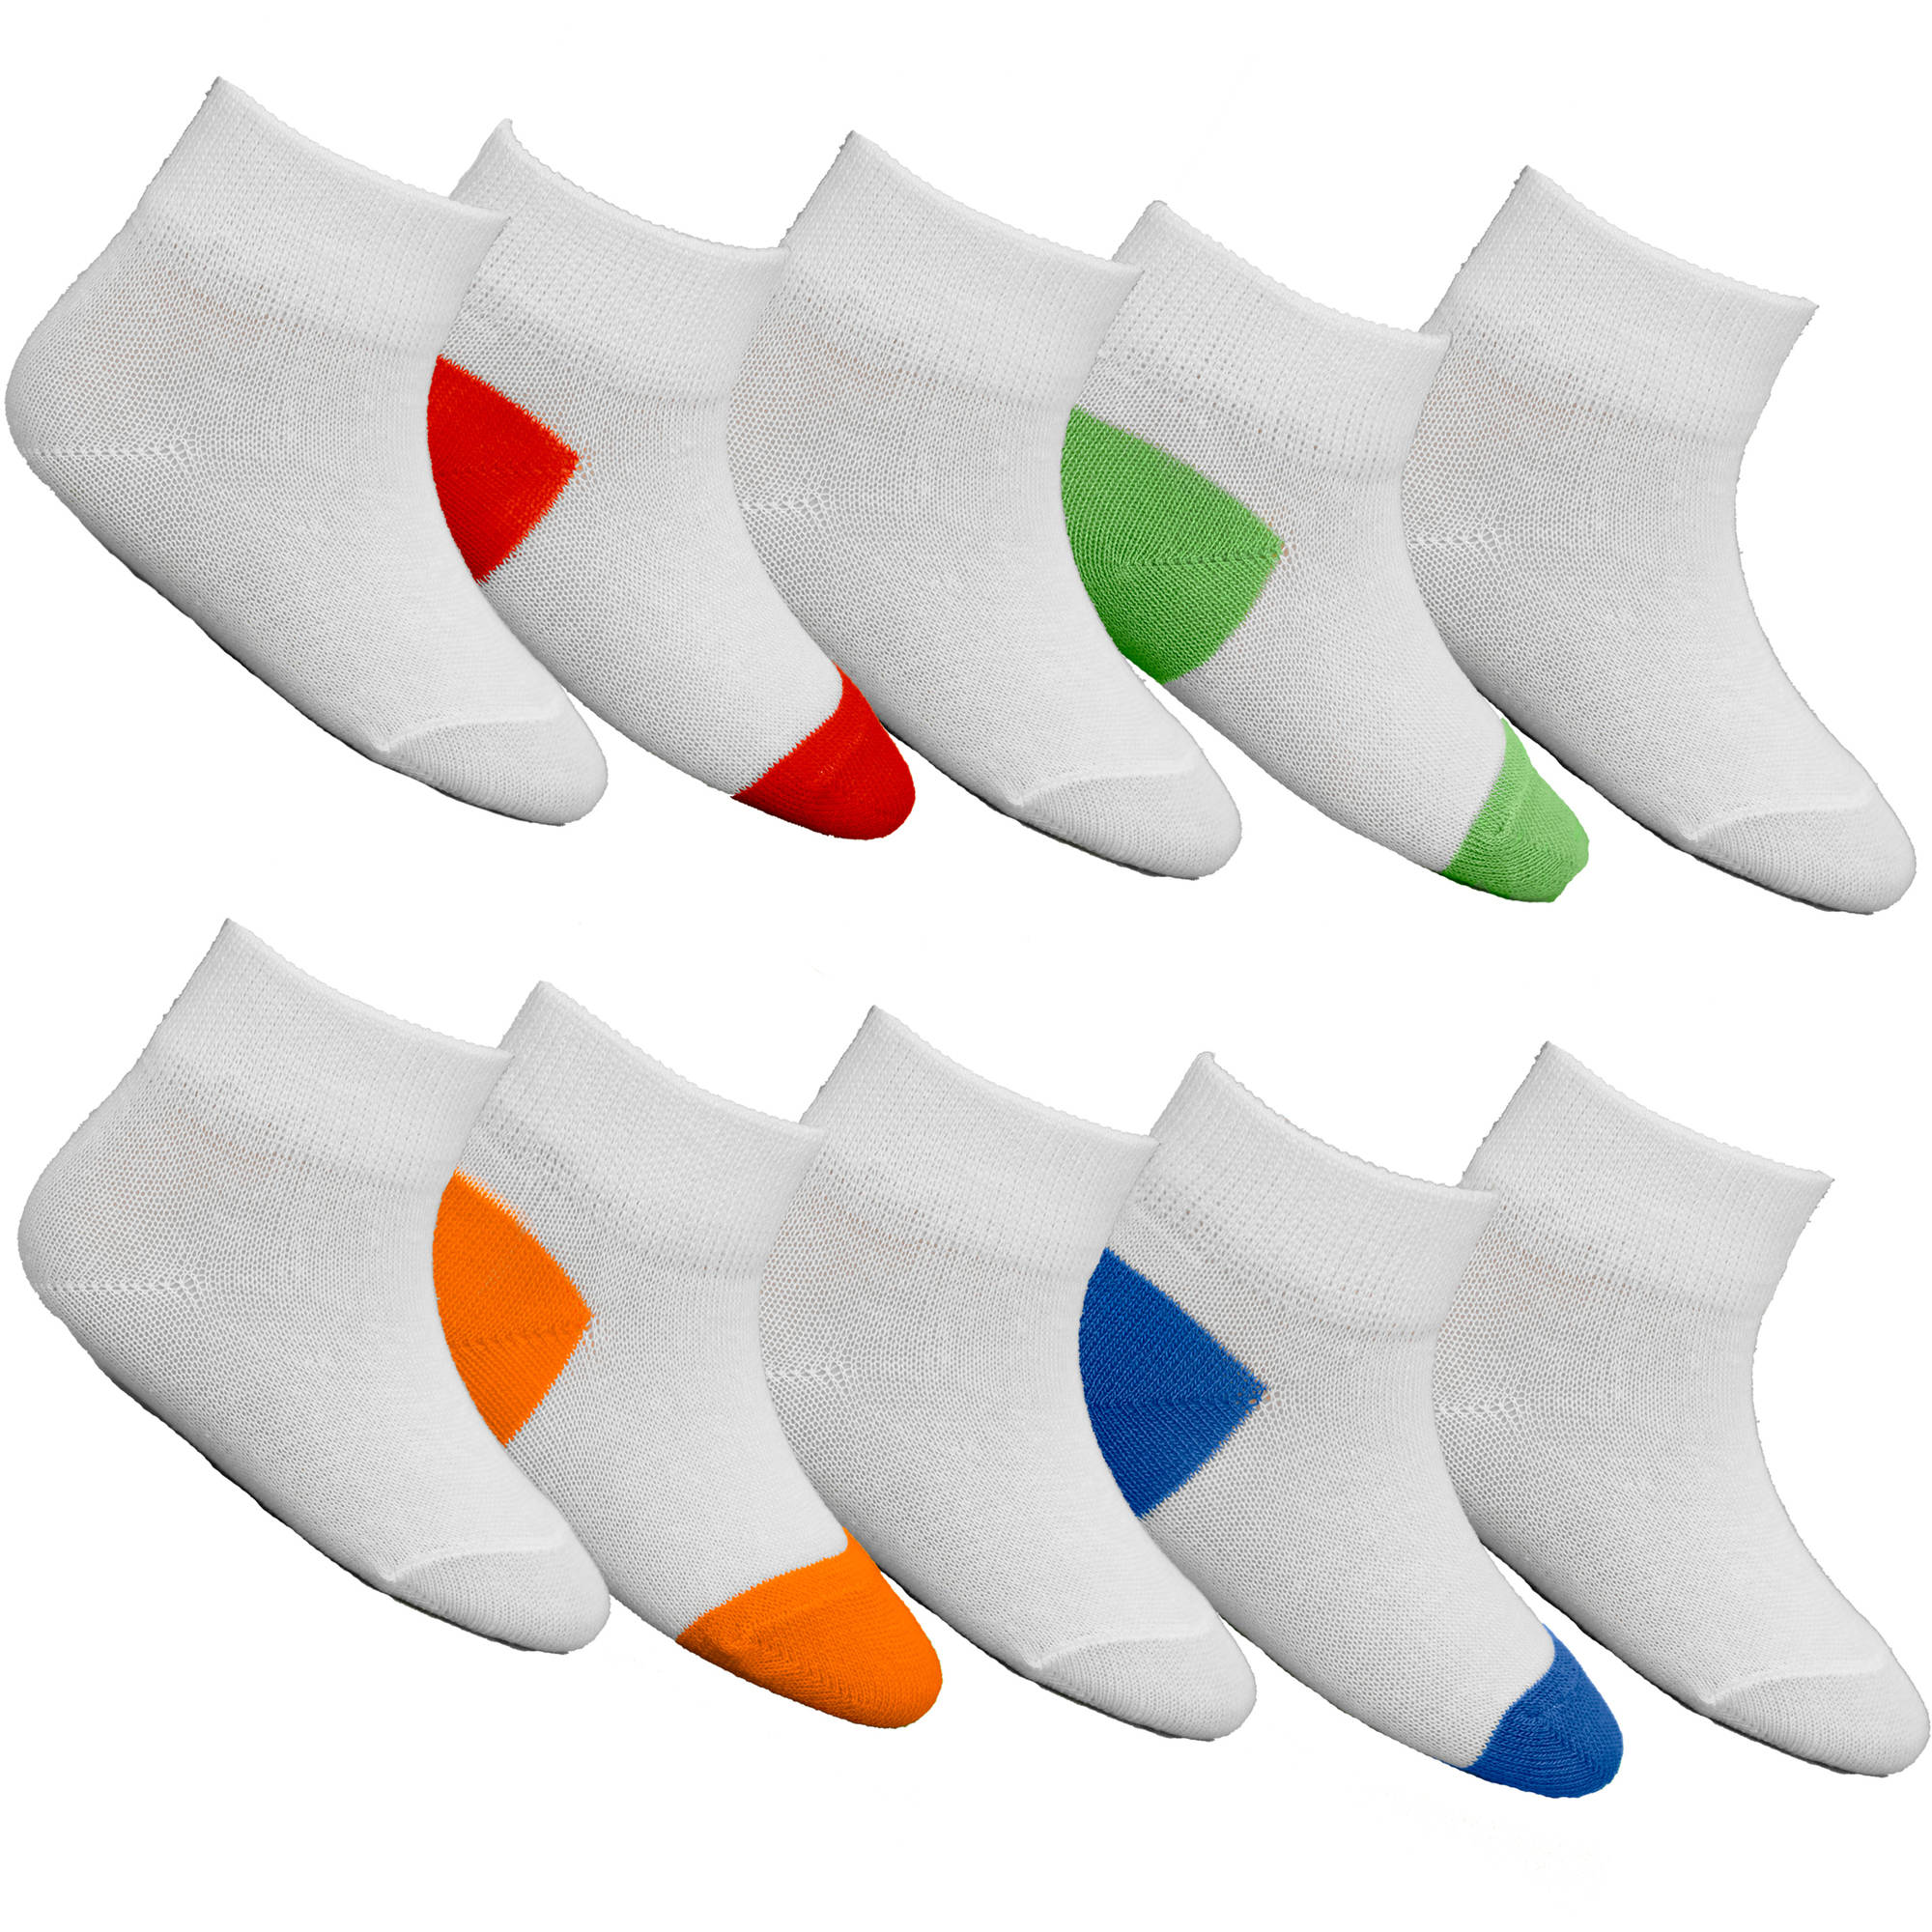 Fruit of the Loom Baby Boy Tuff n' Comfy Low Cut Socks - 10 Pack